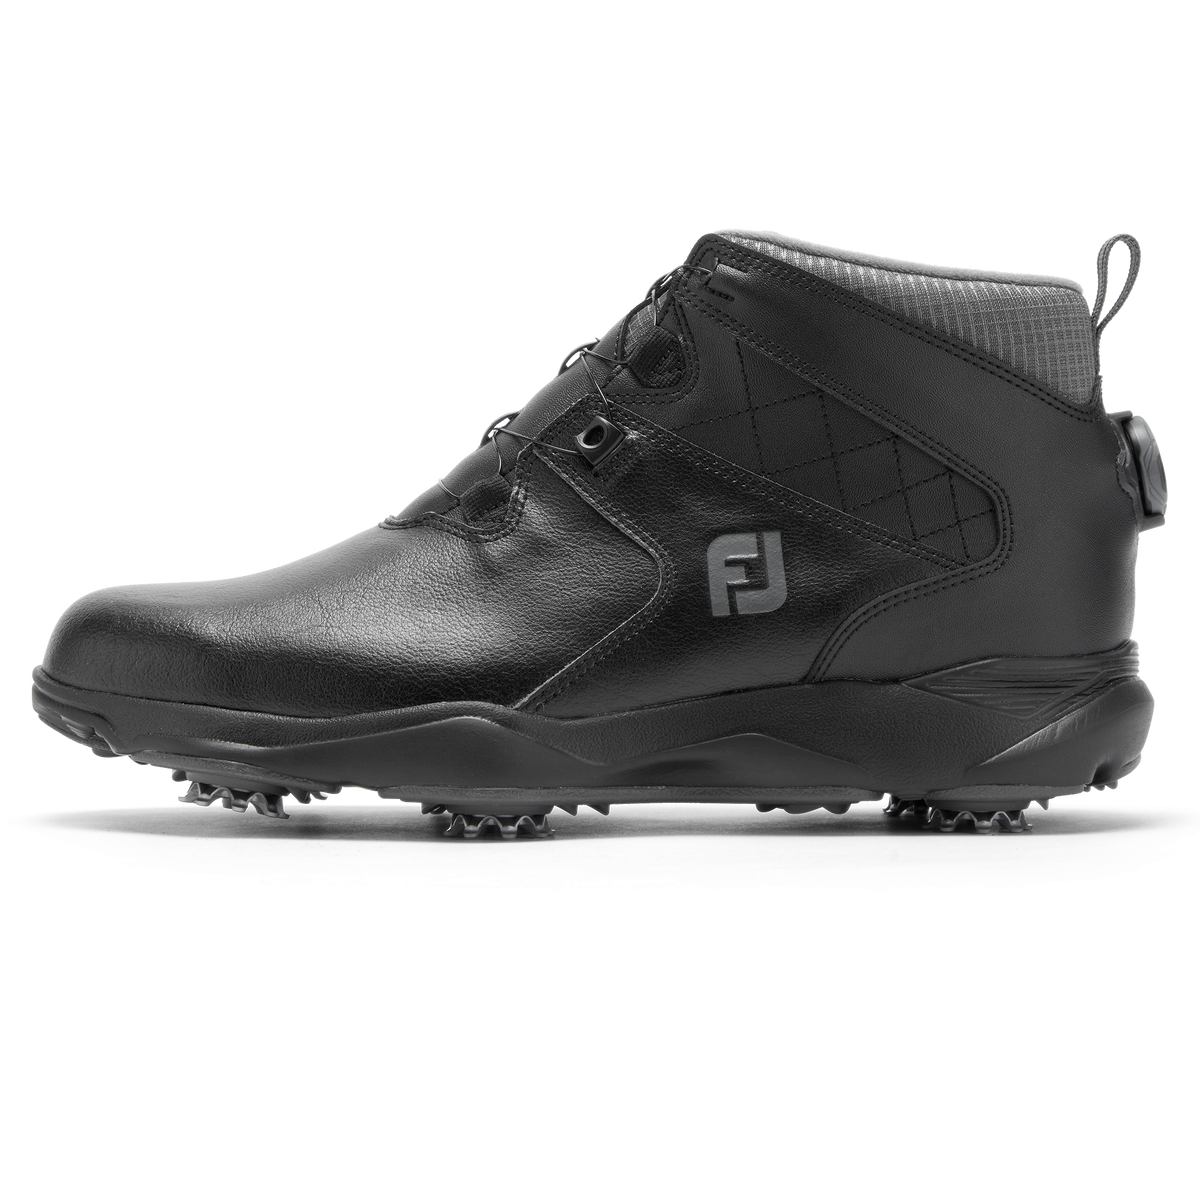 FJ Winter Golf Boot BOA